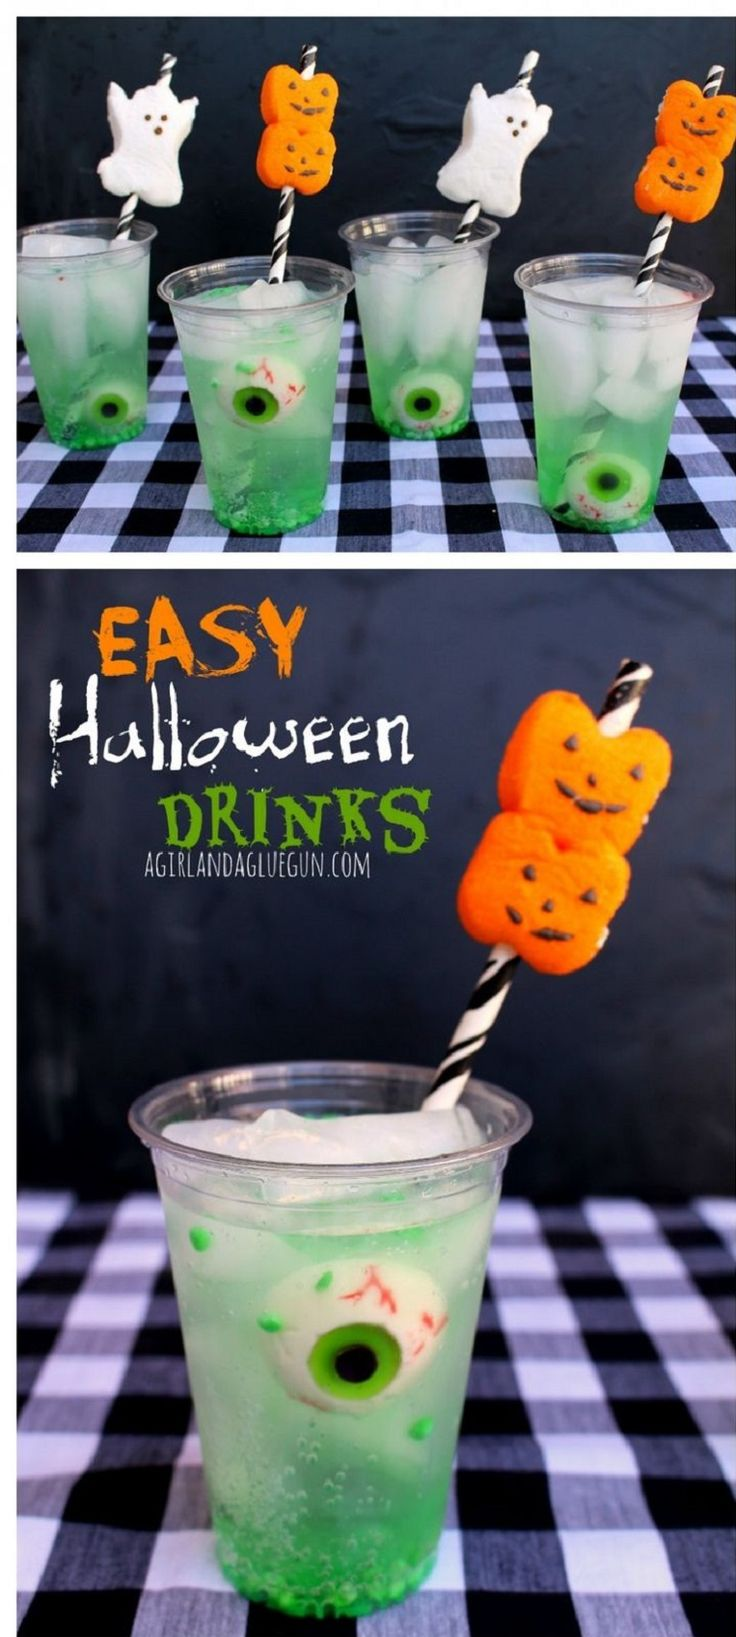 17 best ideas about adult halloween drinks on pinterest for Alcoholic drinks for halloween punch